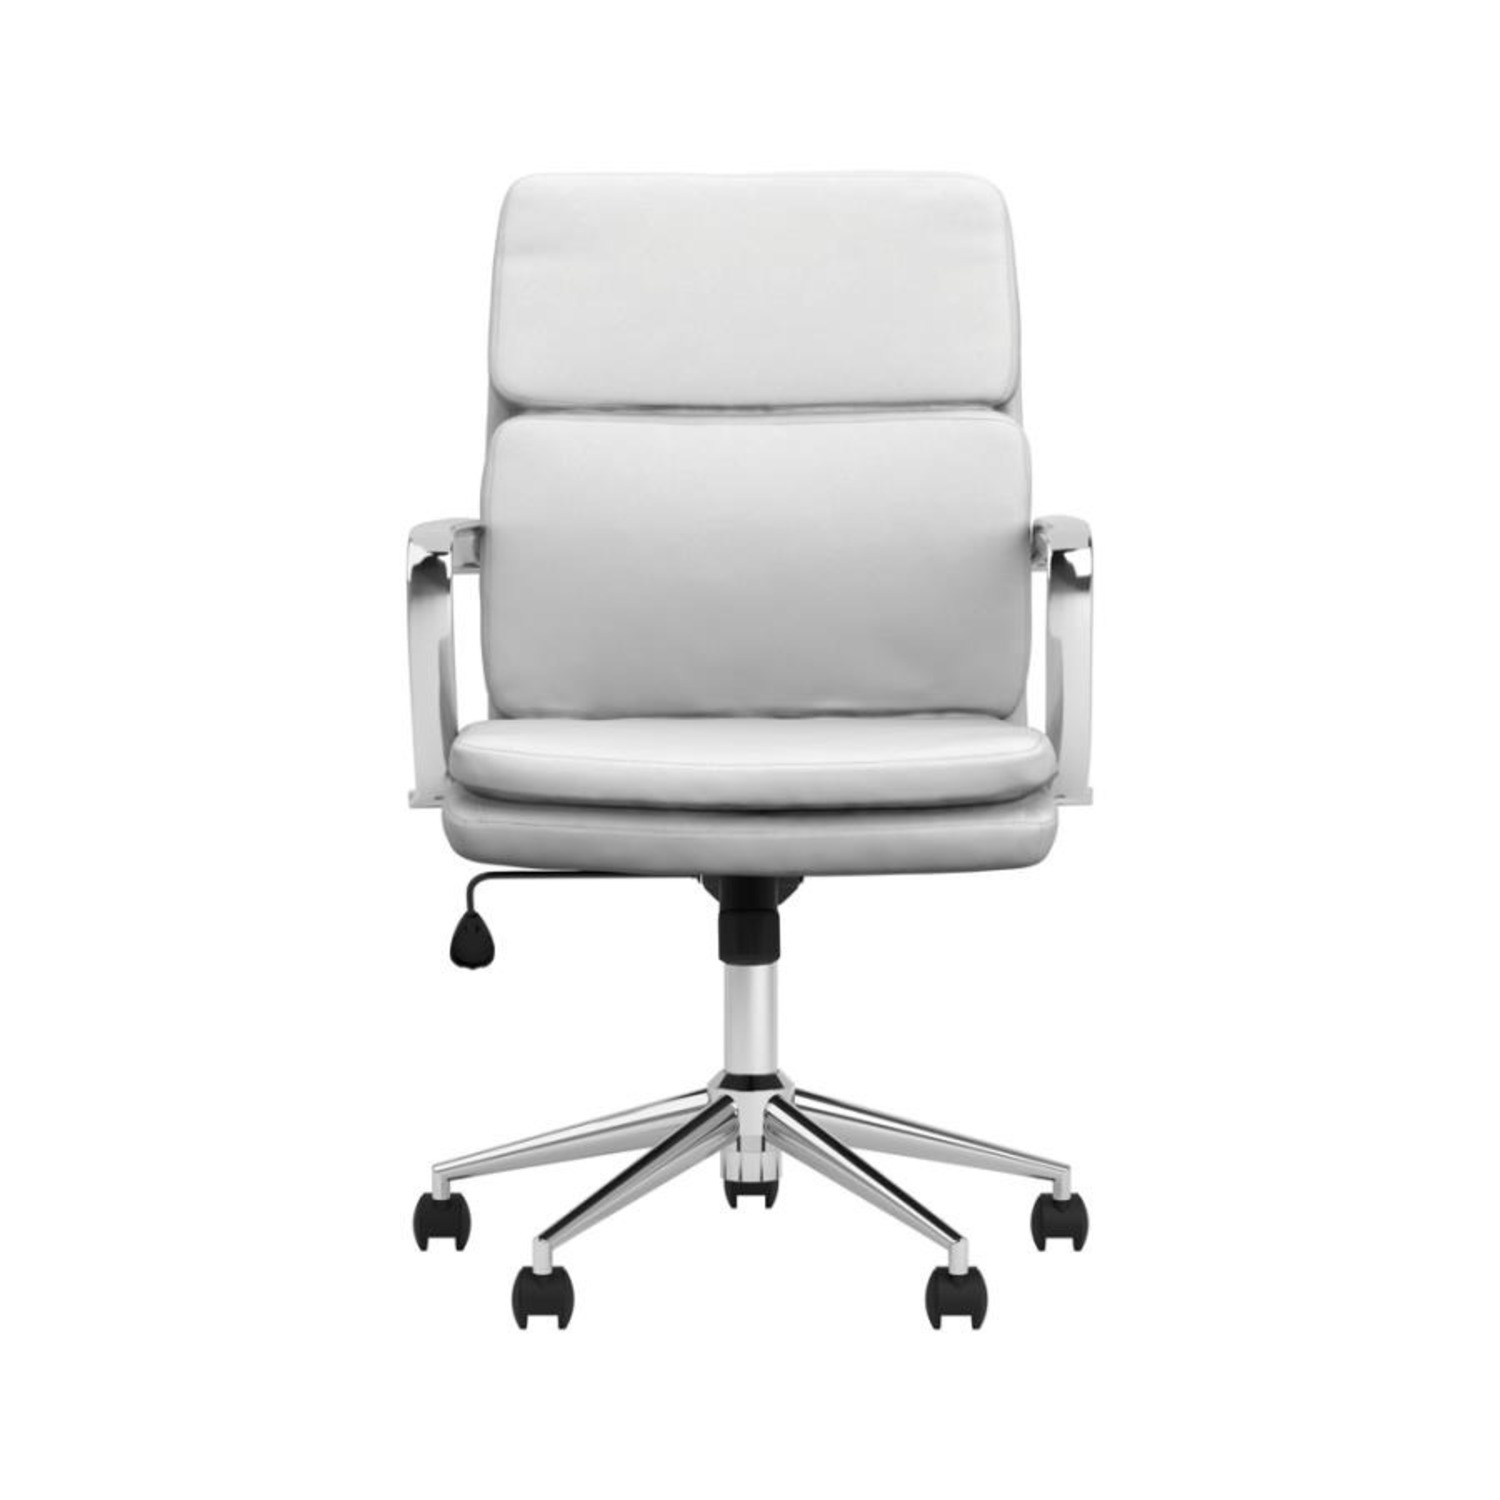 Office Chair In White Leatherette & Chrome Finish - image-1